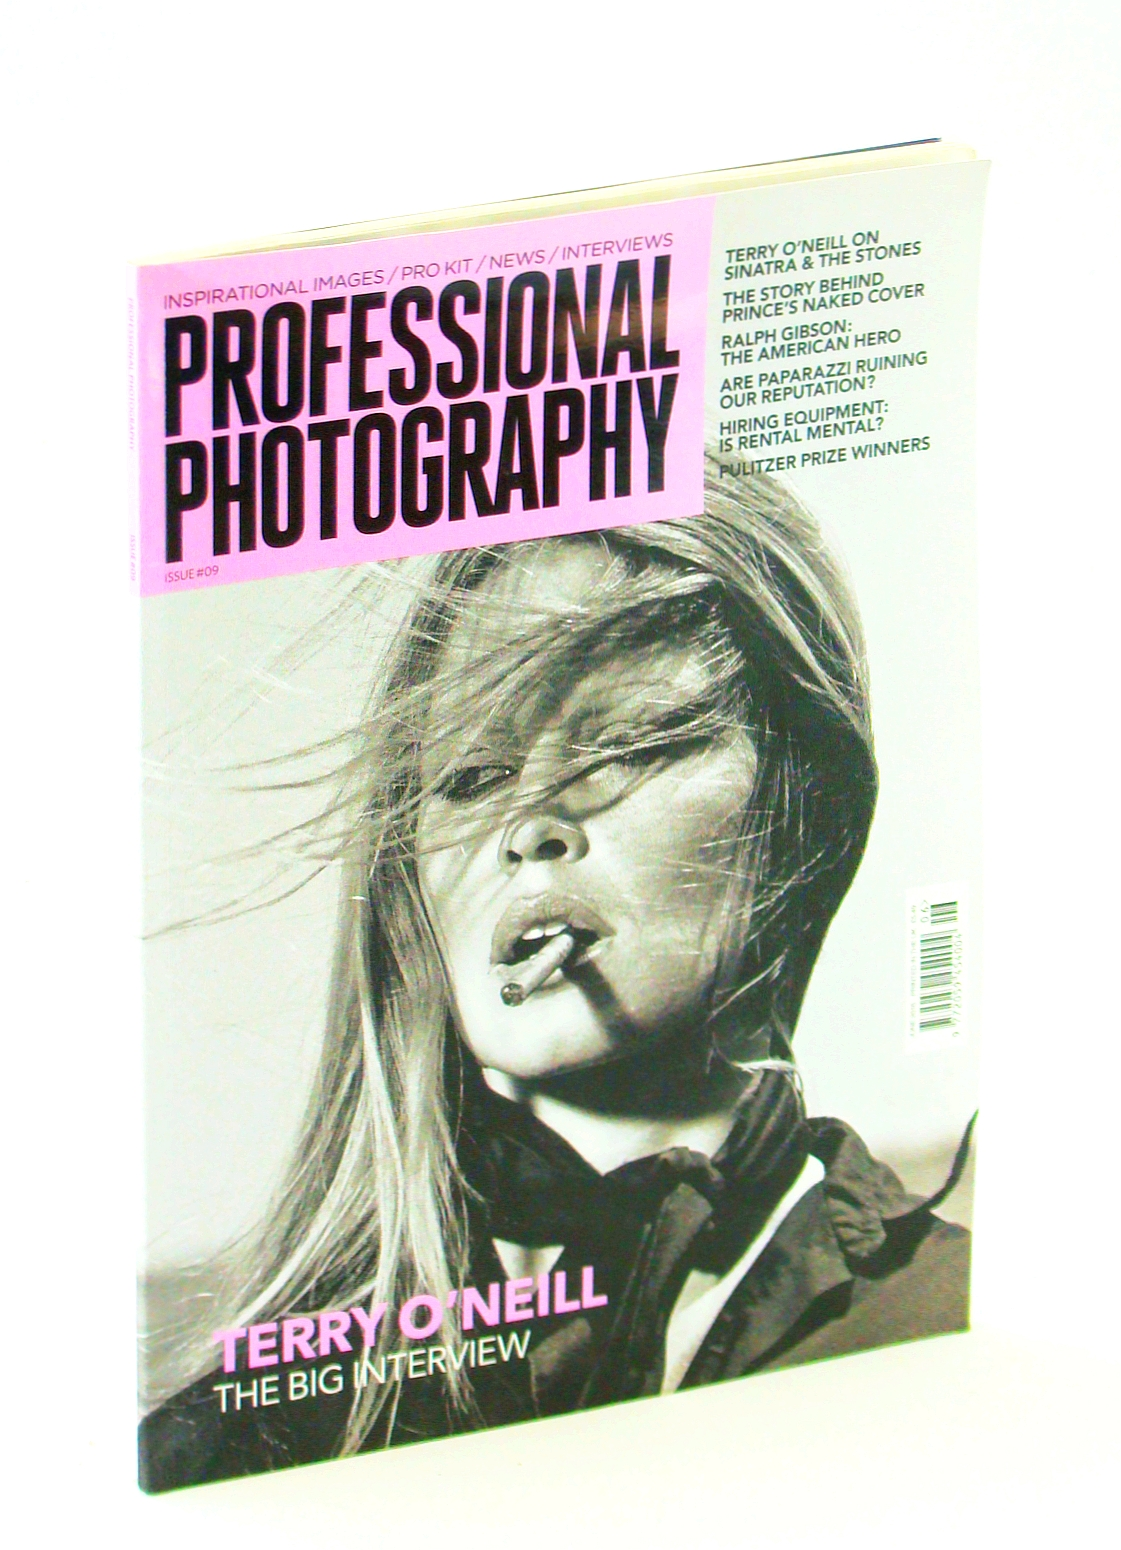 Image for PROFESSIONAL PHOTOGRAPHY, JUNE 2016, MAGAZINE PRINTED IN THE UK, ISSUE # 09, INSPIRATIONAL/IMAGES - PRO KIT/NEWS/INTERVIEWS